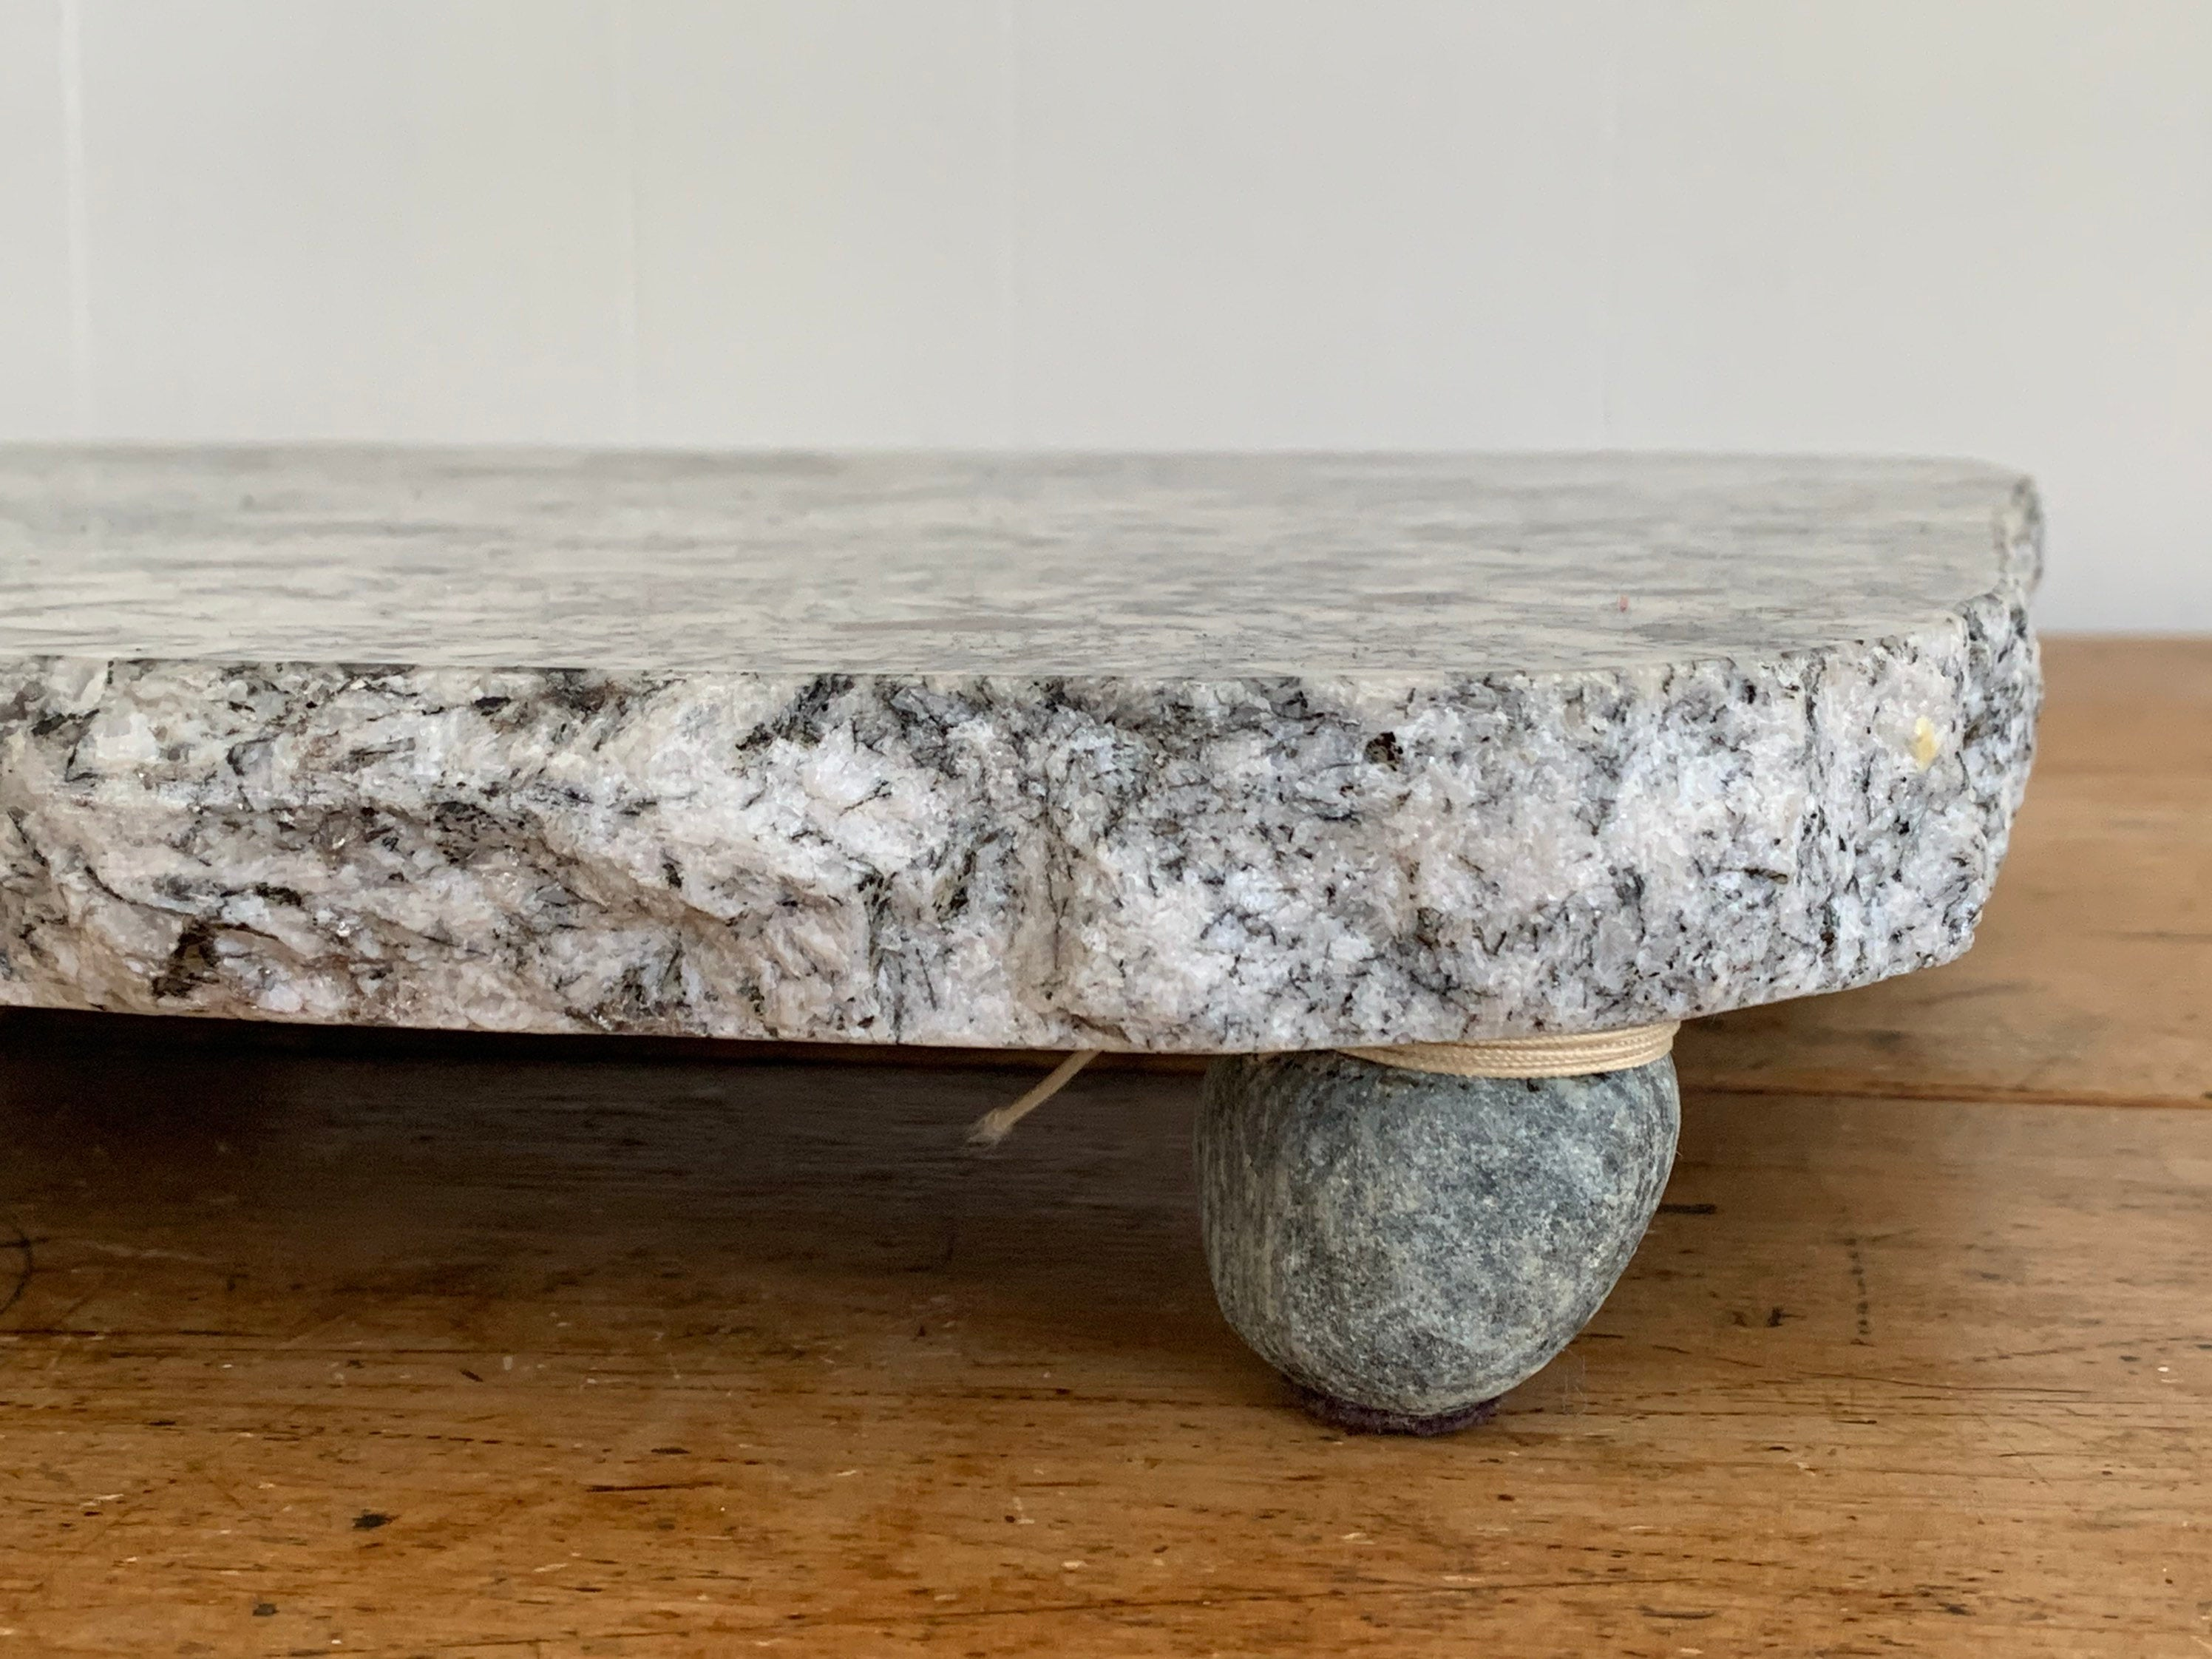 Large Vintage Marble Cheese Board with Four Feet | Beautifully Marbled Charcuterie Platter Serving Stand Cutting Board